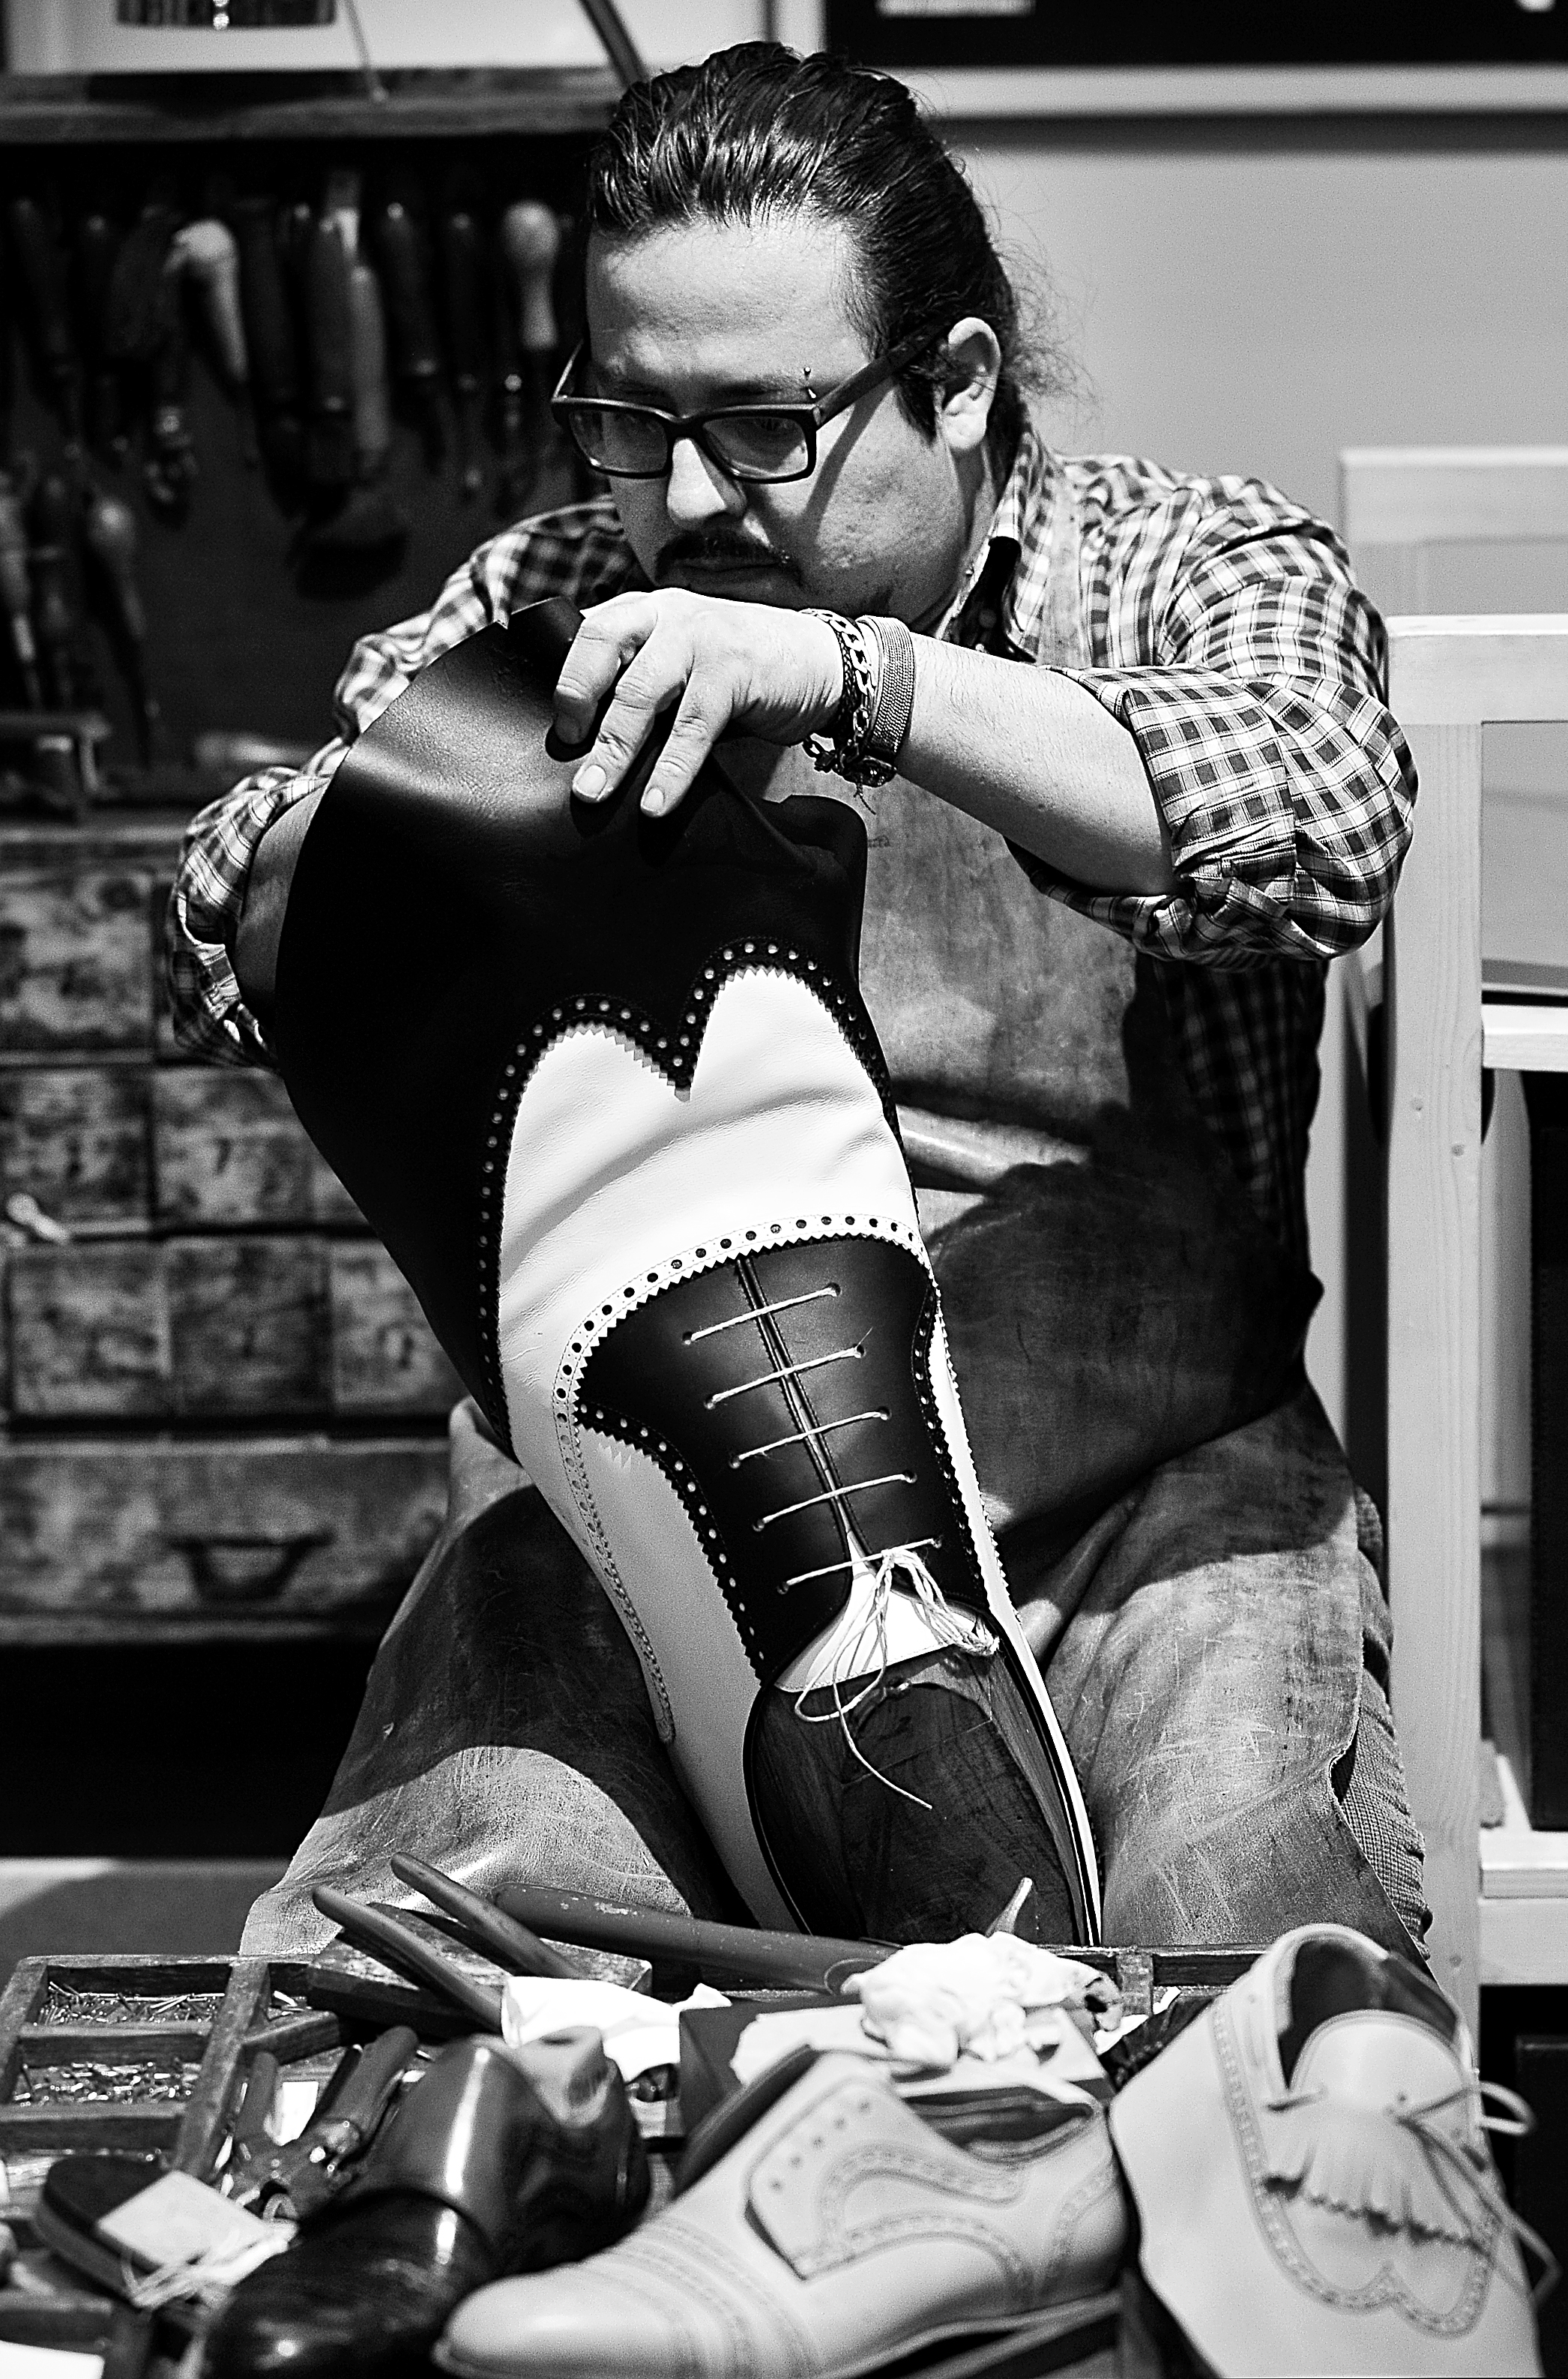 Peruvian-born, Italian educated artisan Giancarlo Zeggara, 39, crafts bespoke shoes for consortium Cuoio di Toscana at Pitti Uomo<br /> Photo by Silio Danti